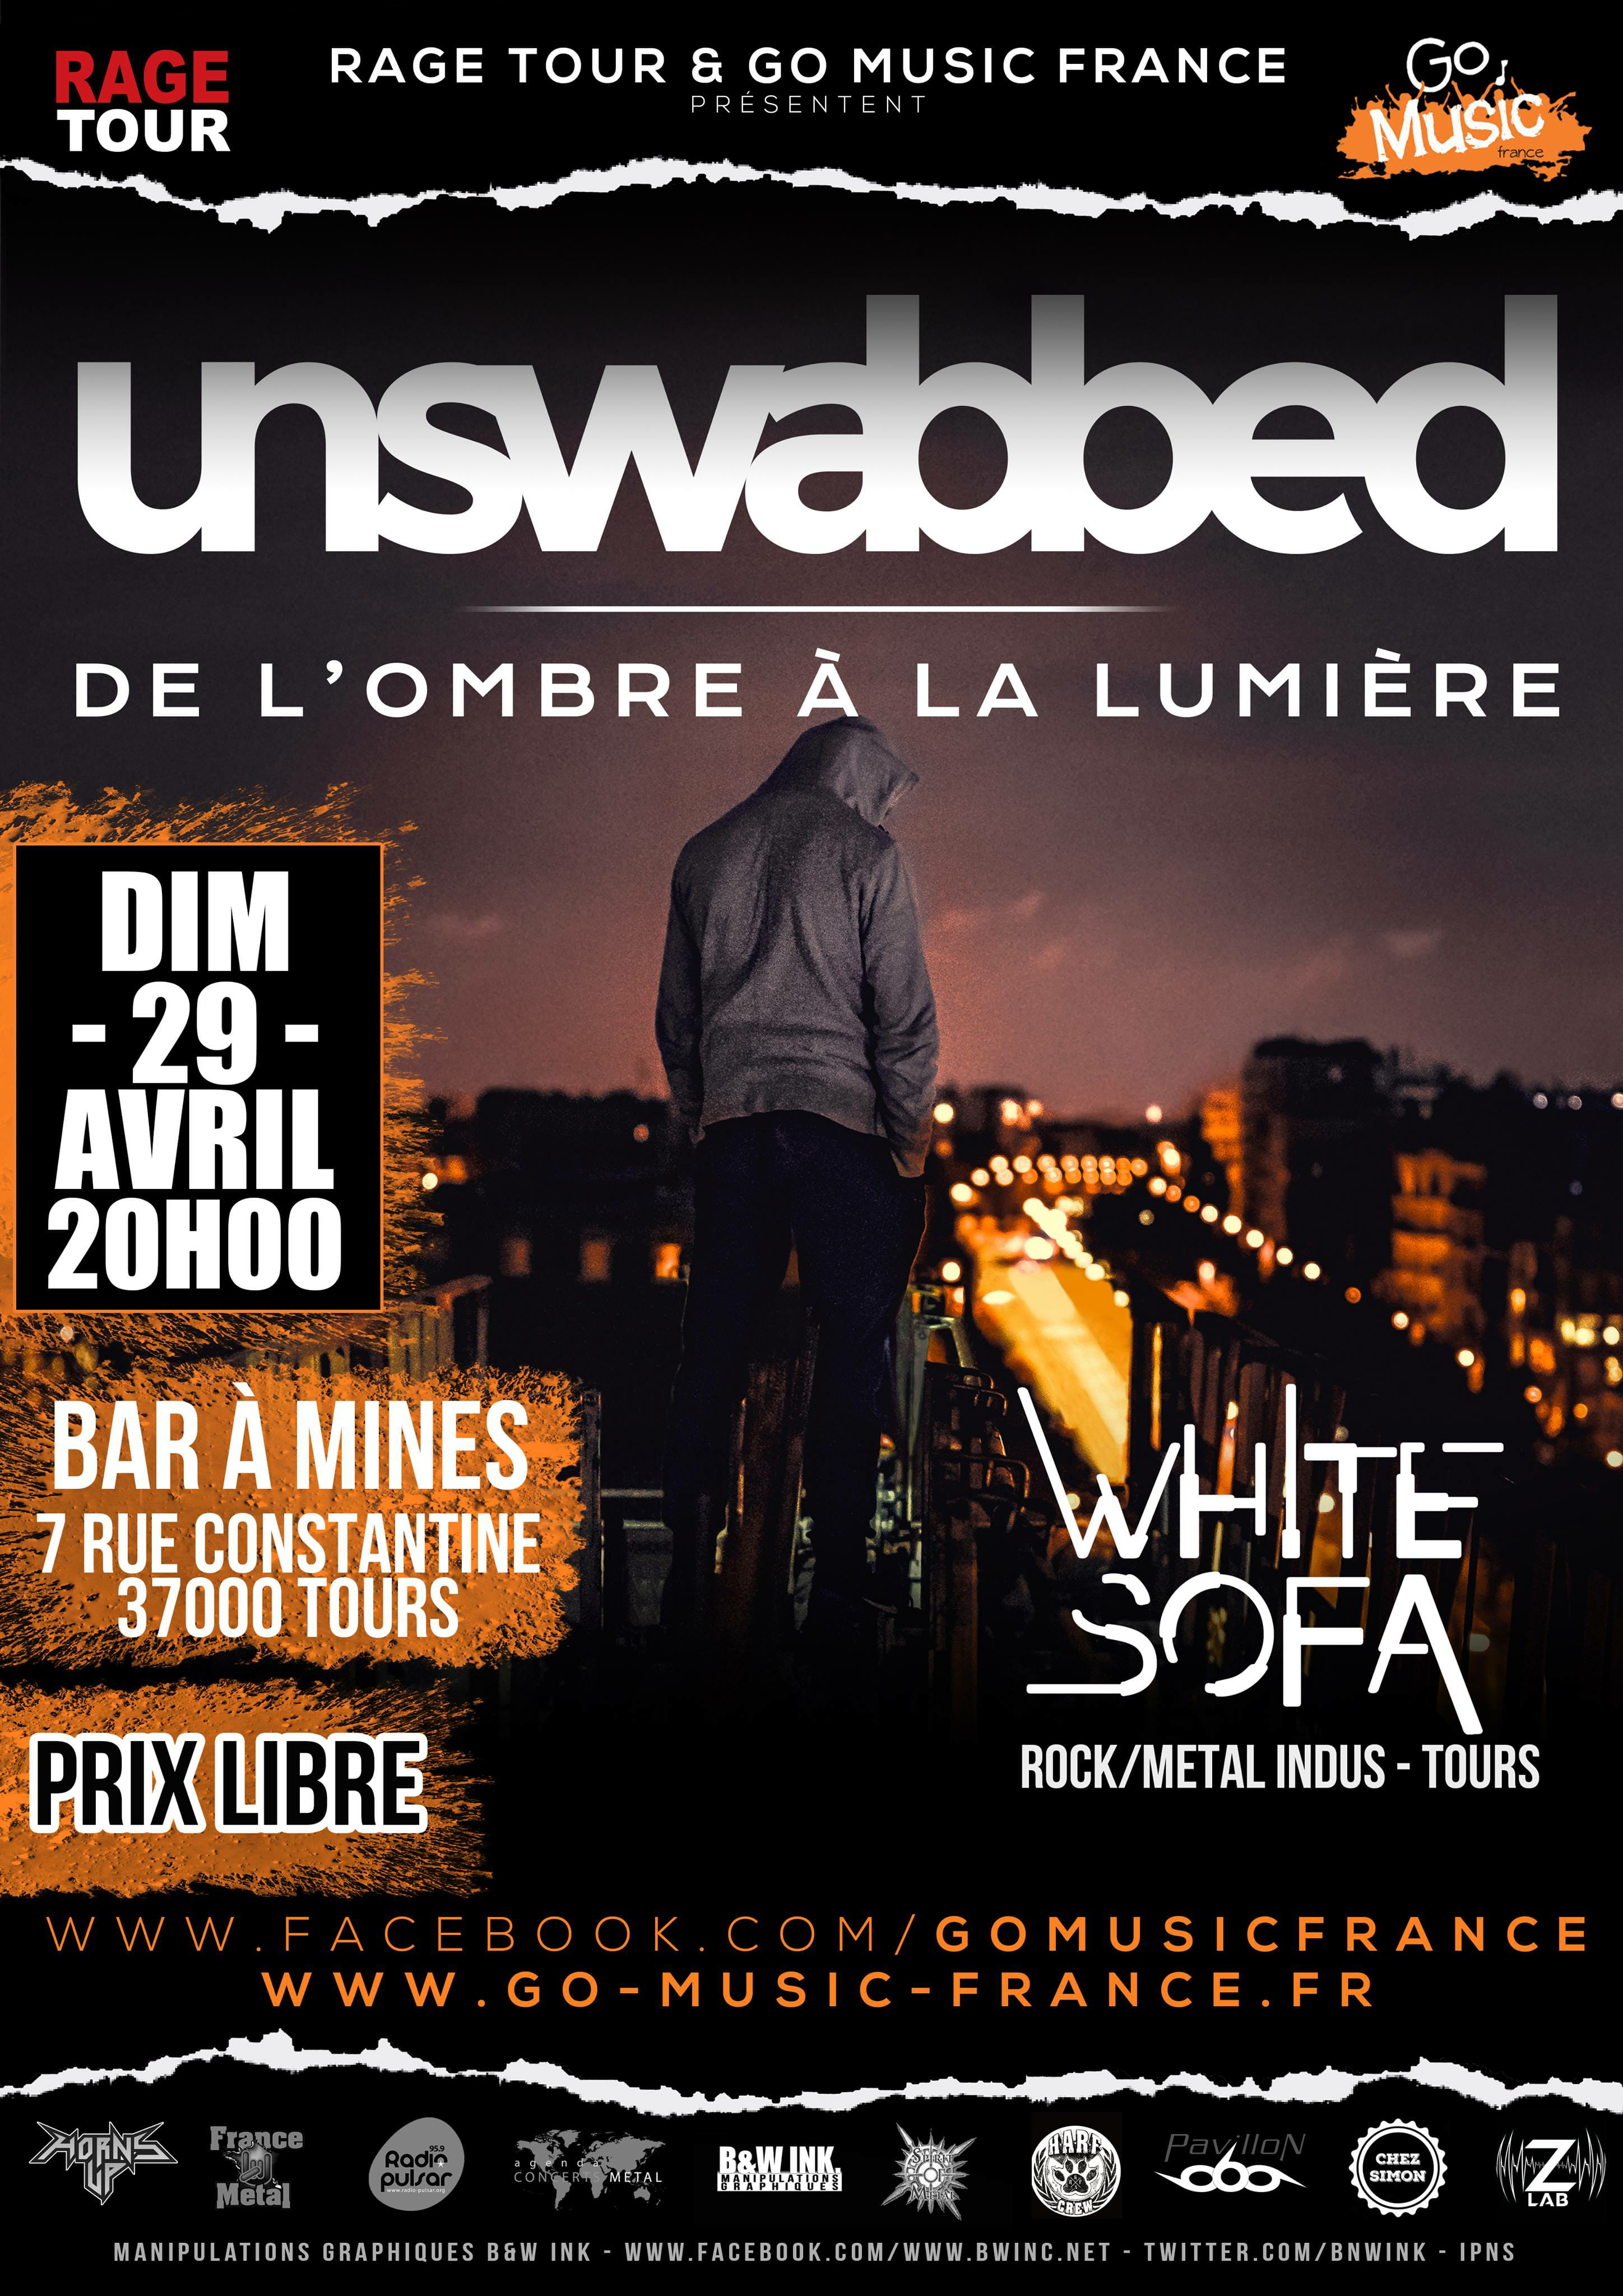 UNSWABBED [TOURS - 37] > 29-04-2018